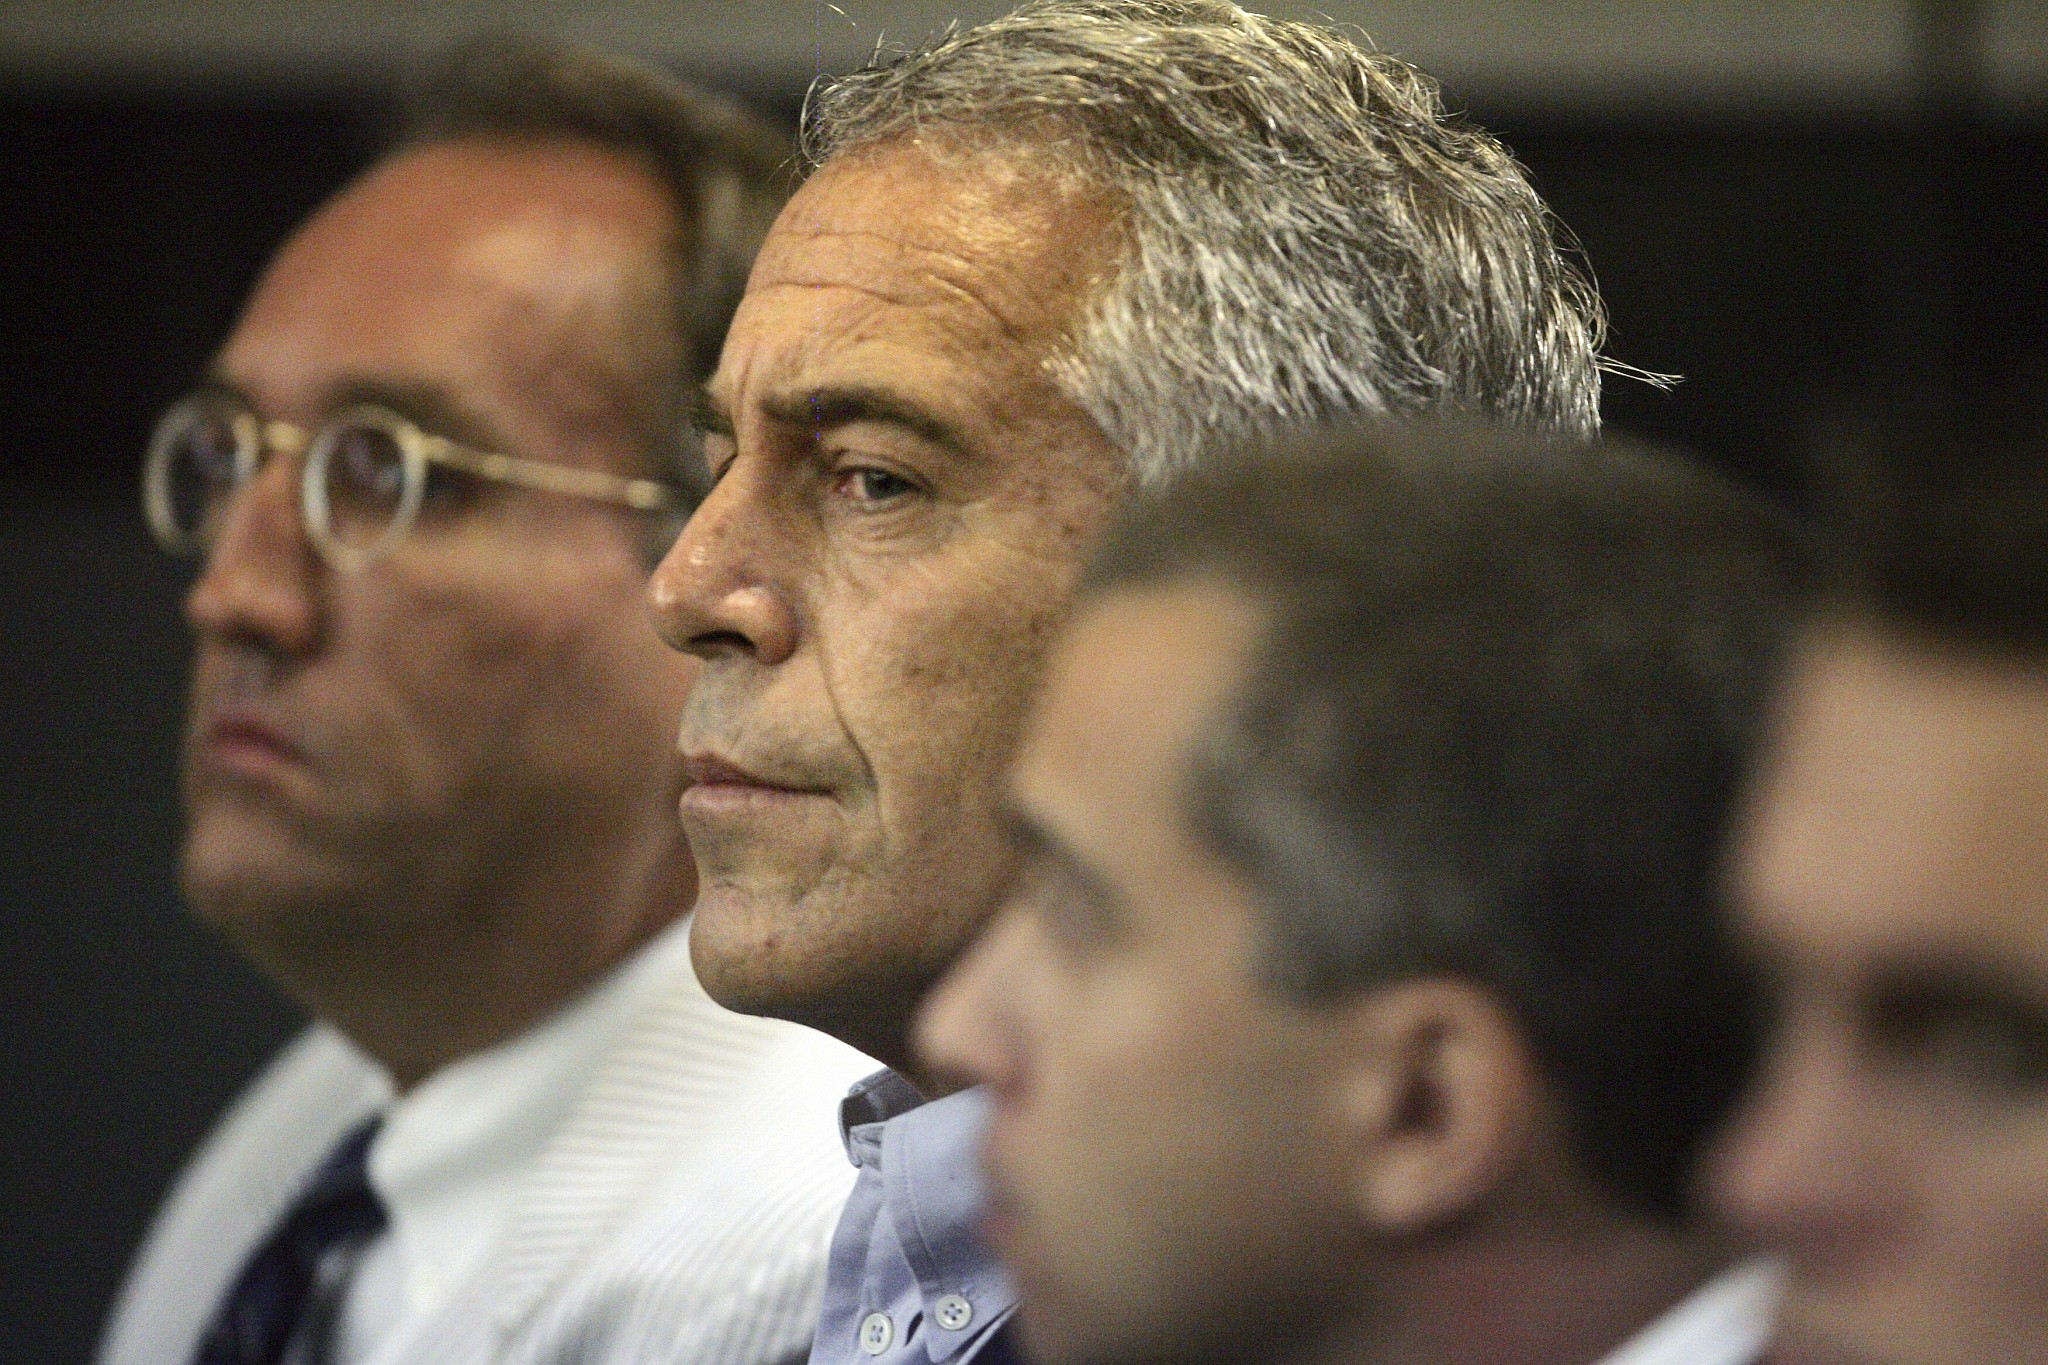 Read the full indictment against accused sex trafficker Jeffrey Epstein